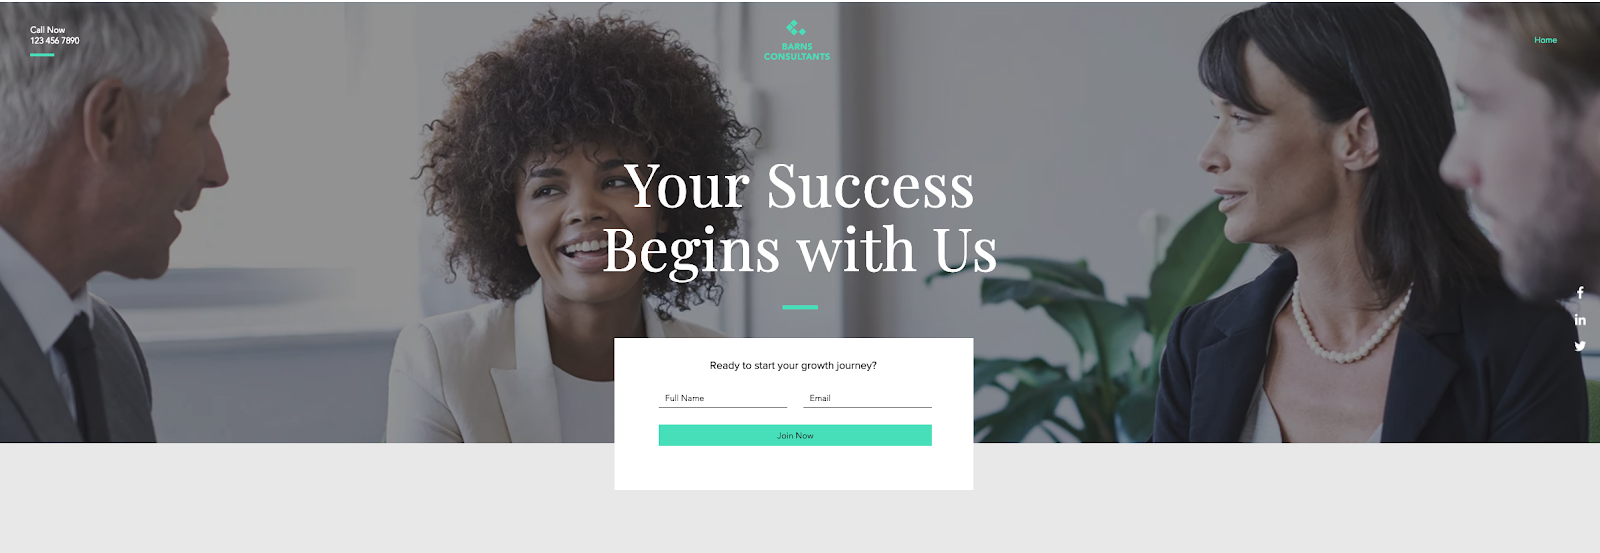 Lead-Gen Landing Page from Wix